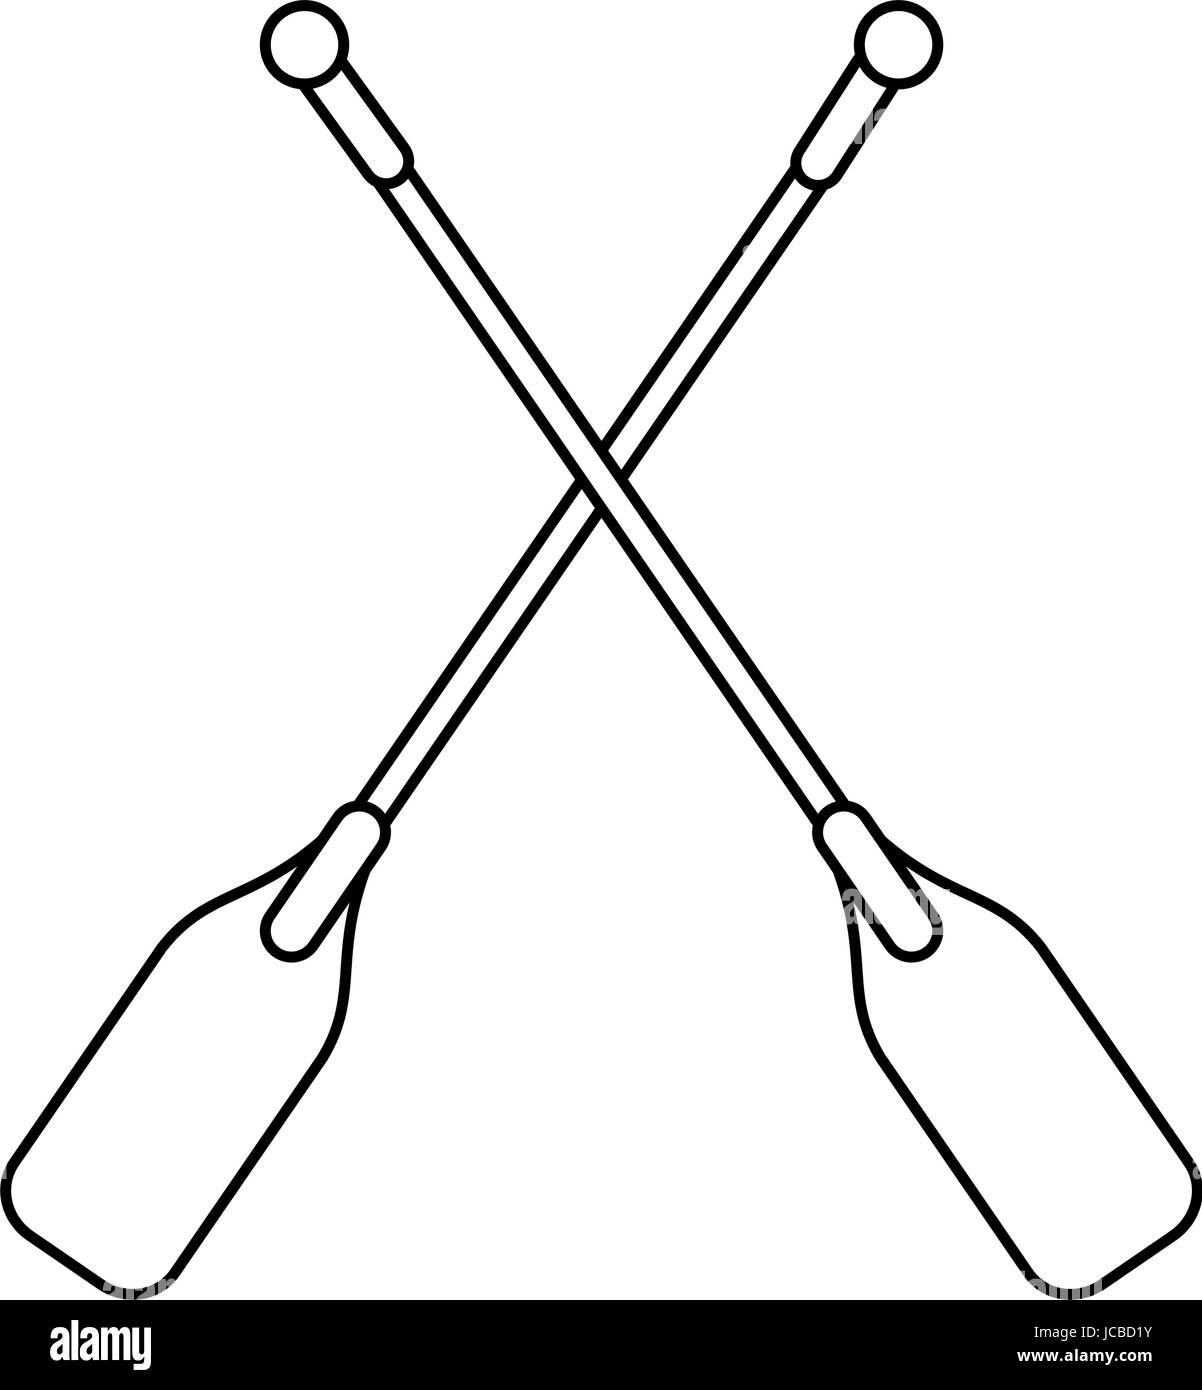 boat oars  icon image  - Stock Image